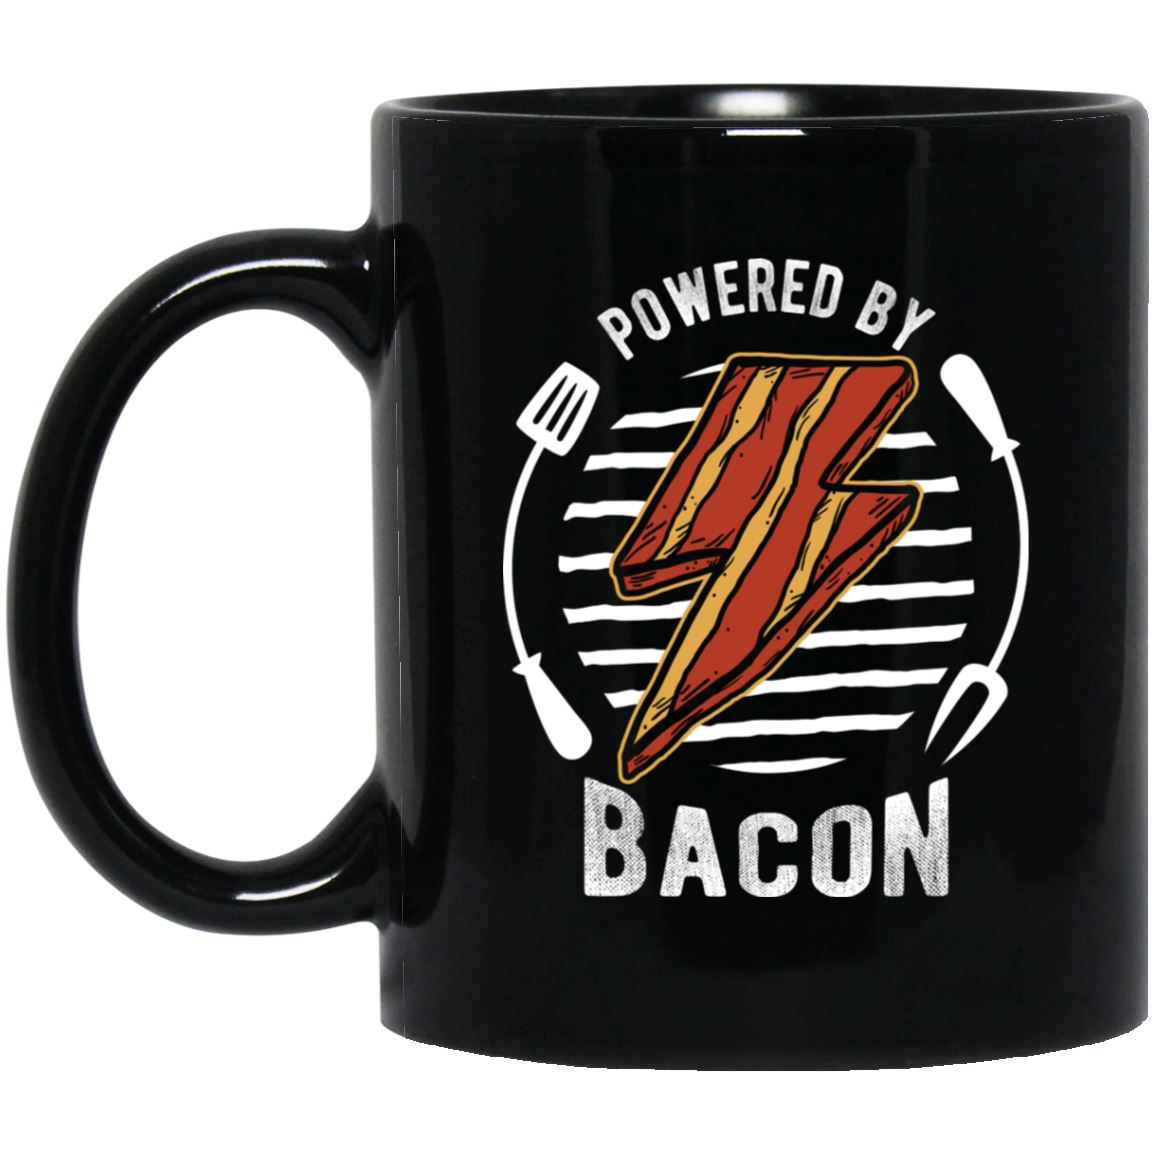 Powered By Bacon (Orange) Mug Drinkware CustomCat Black 11 oz.